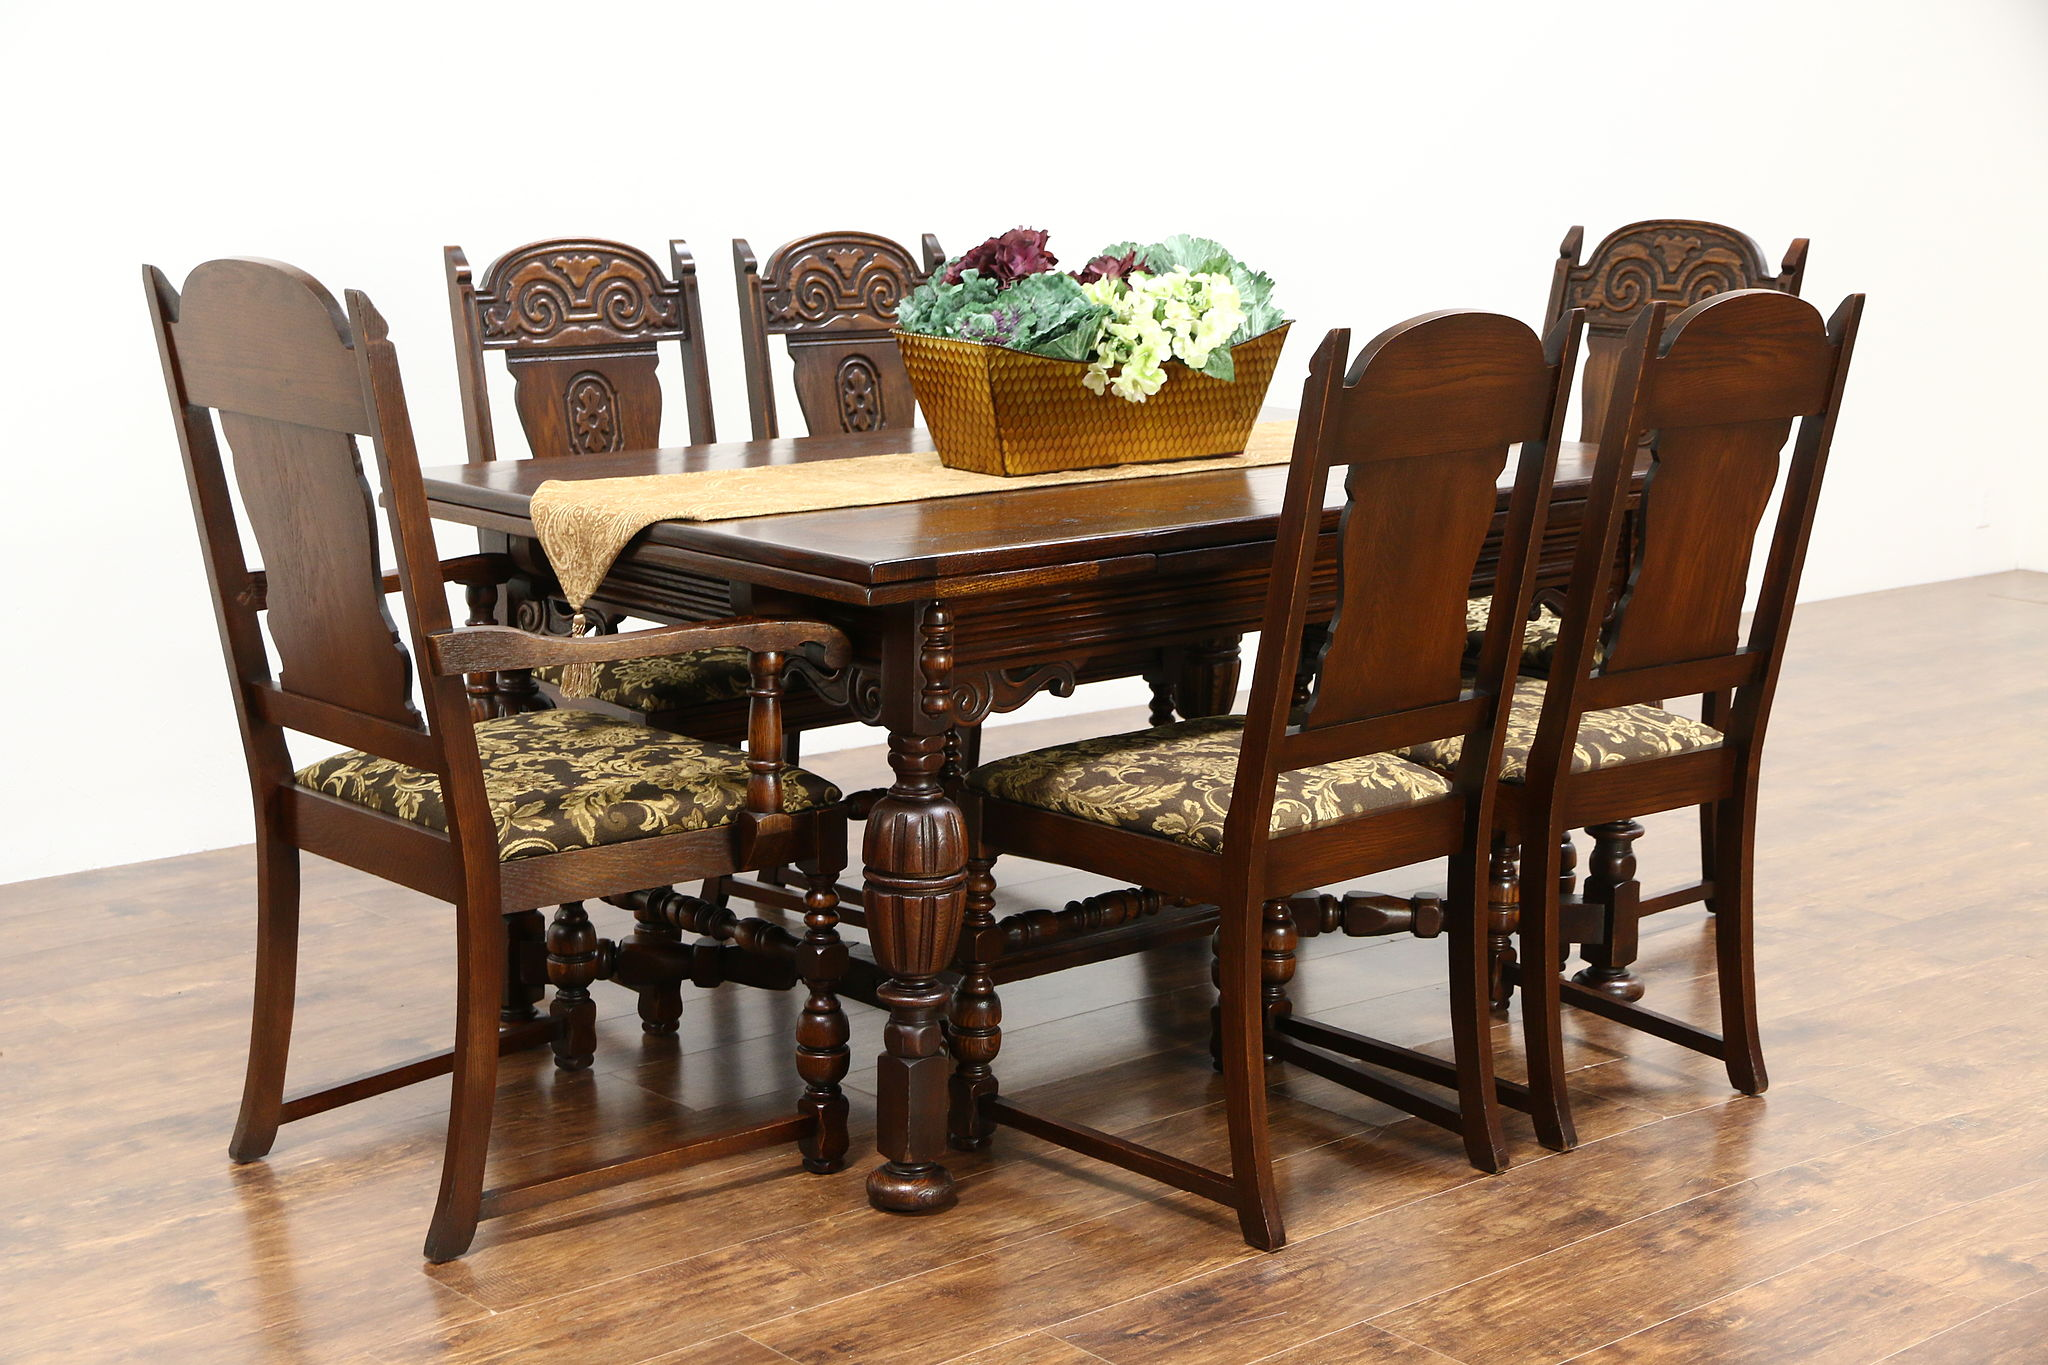 English Tudor Style 1920 Antique Oak Dining Set 6 Chairs New Upholstery Table